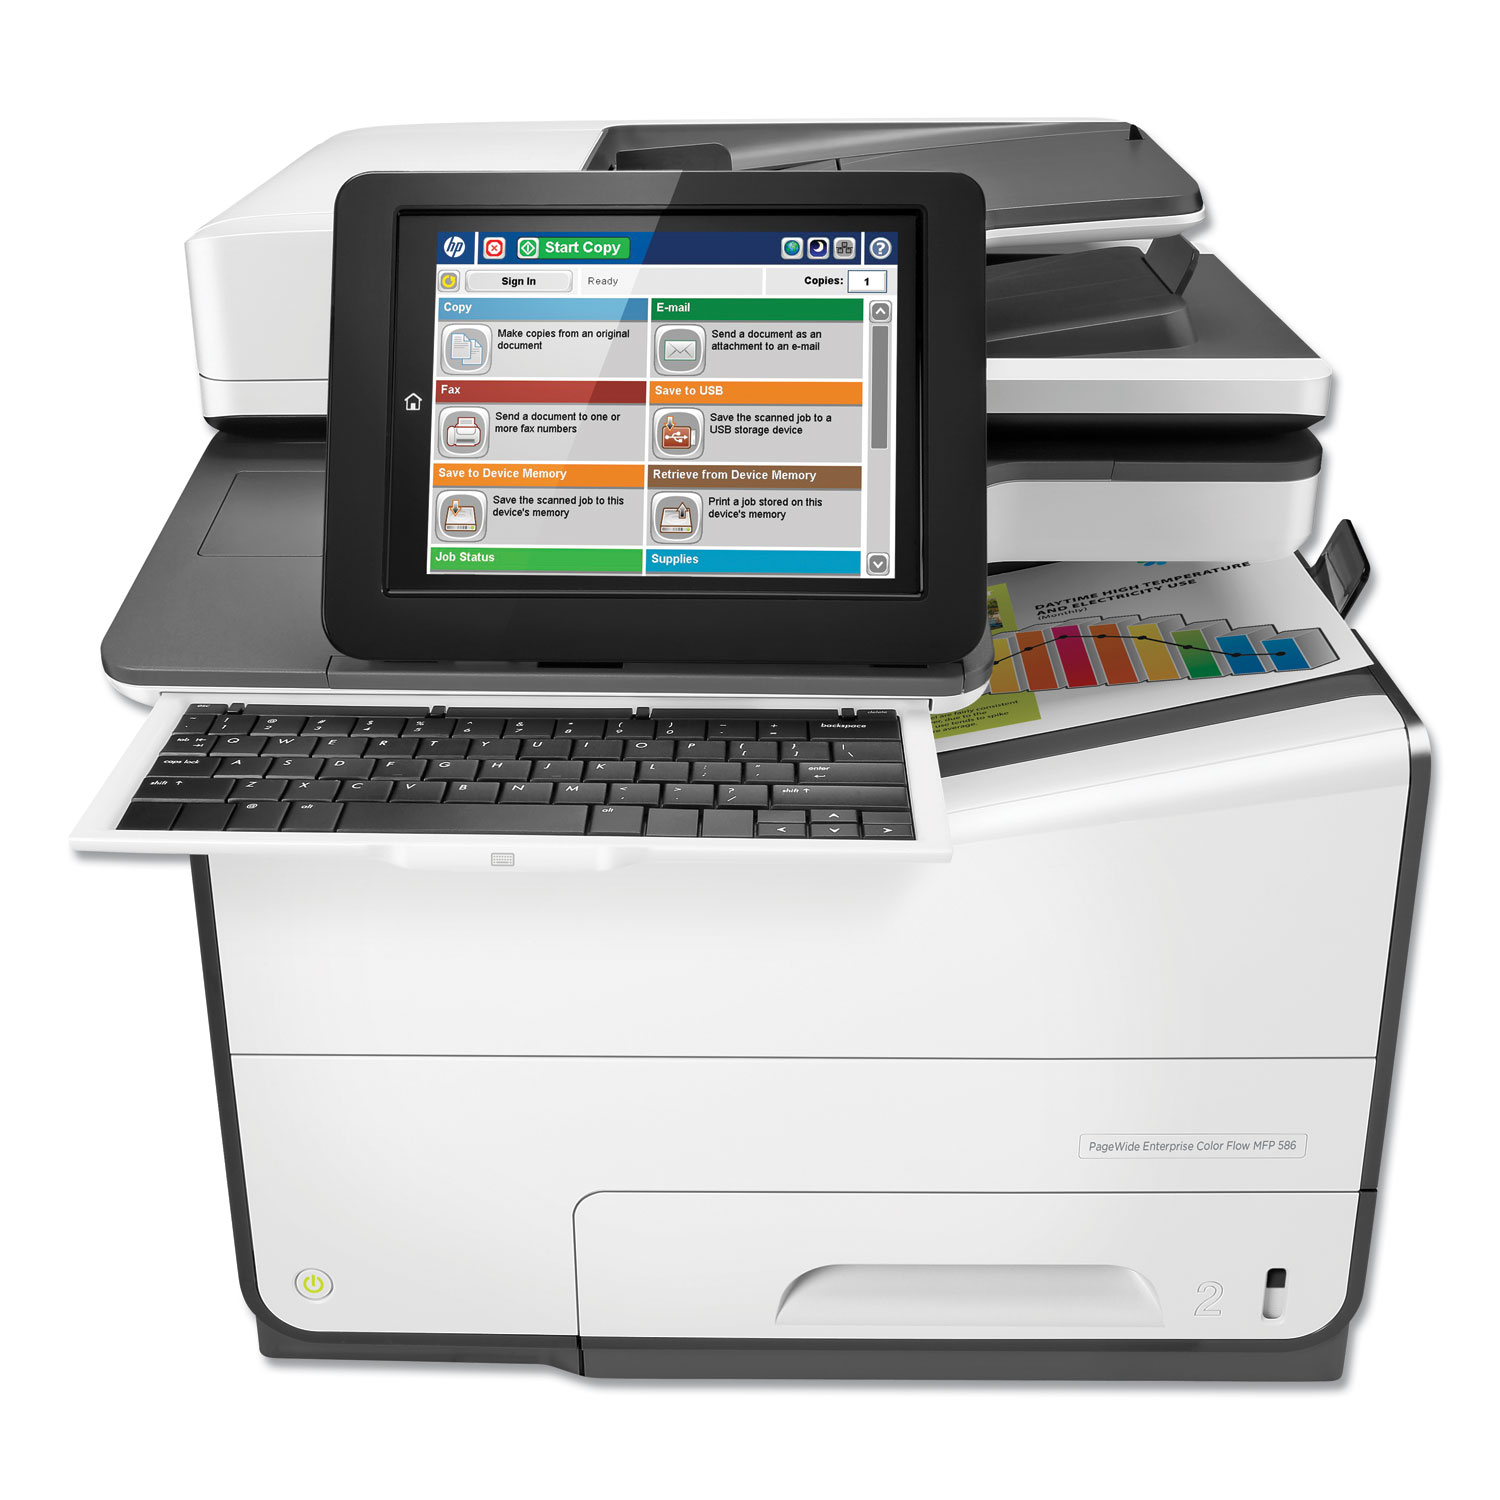 PageWide Enterprise Color MFP 586fz, Copy/Fax/Print/Scan